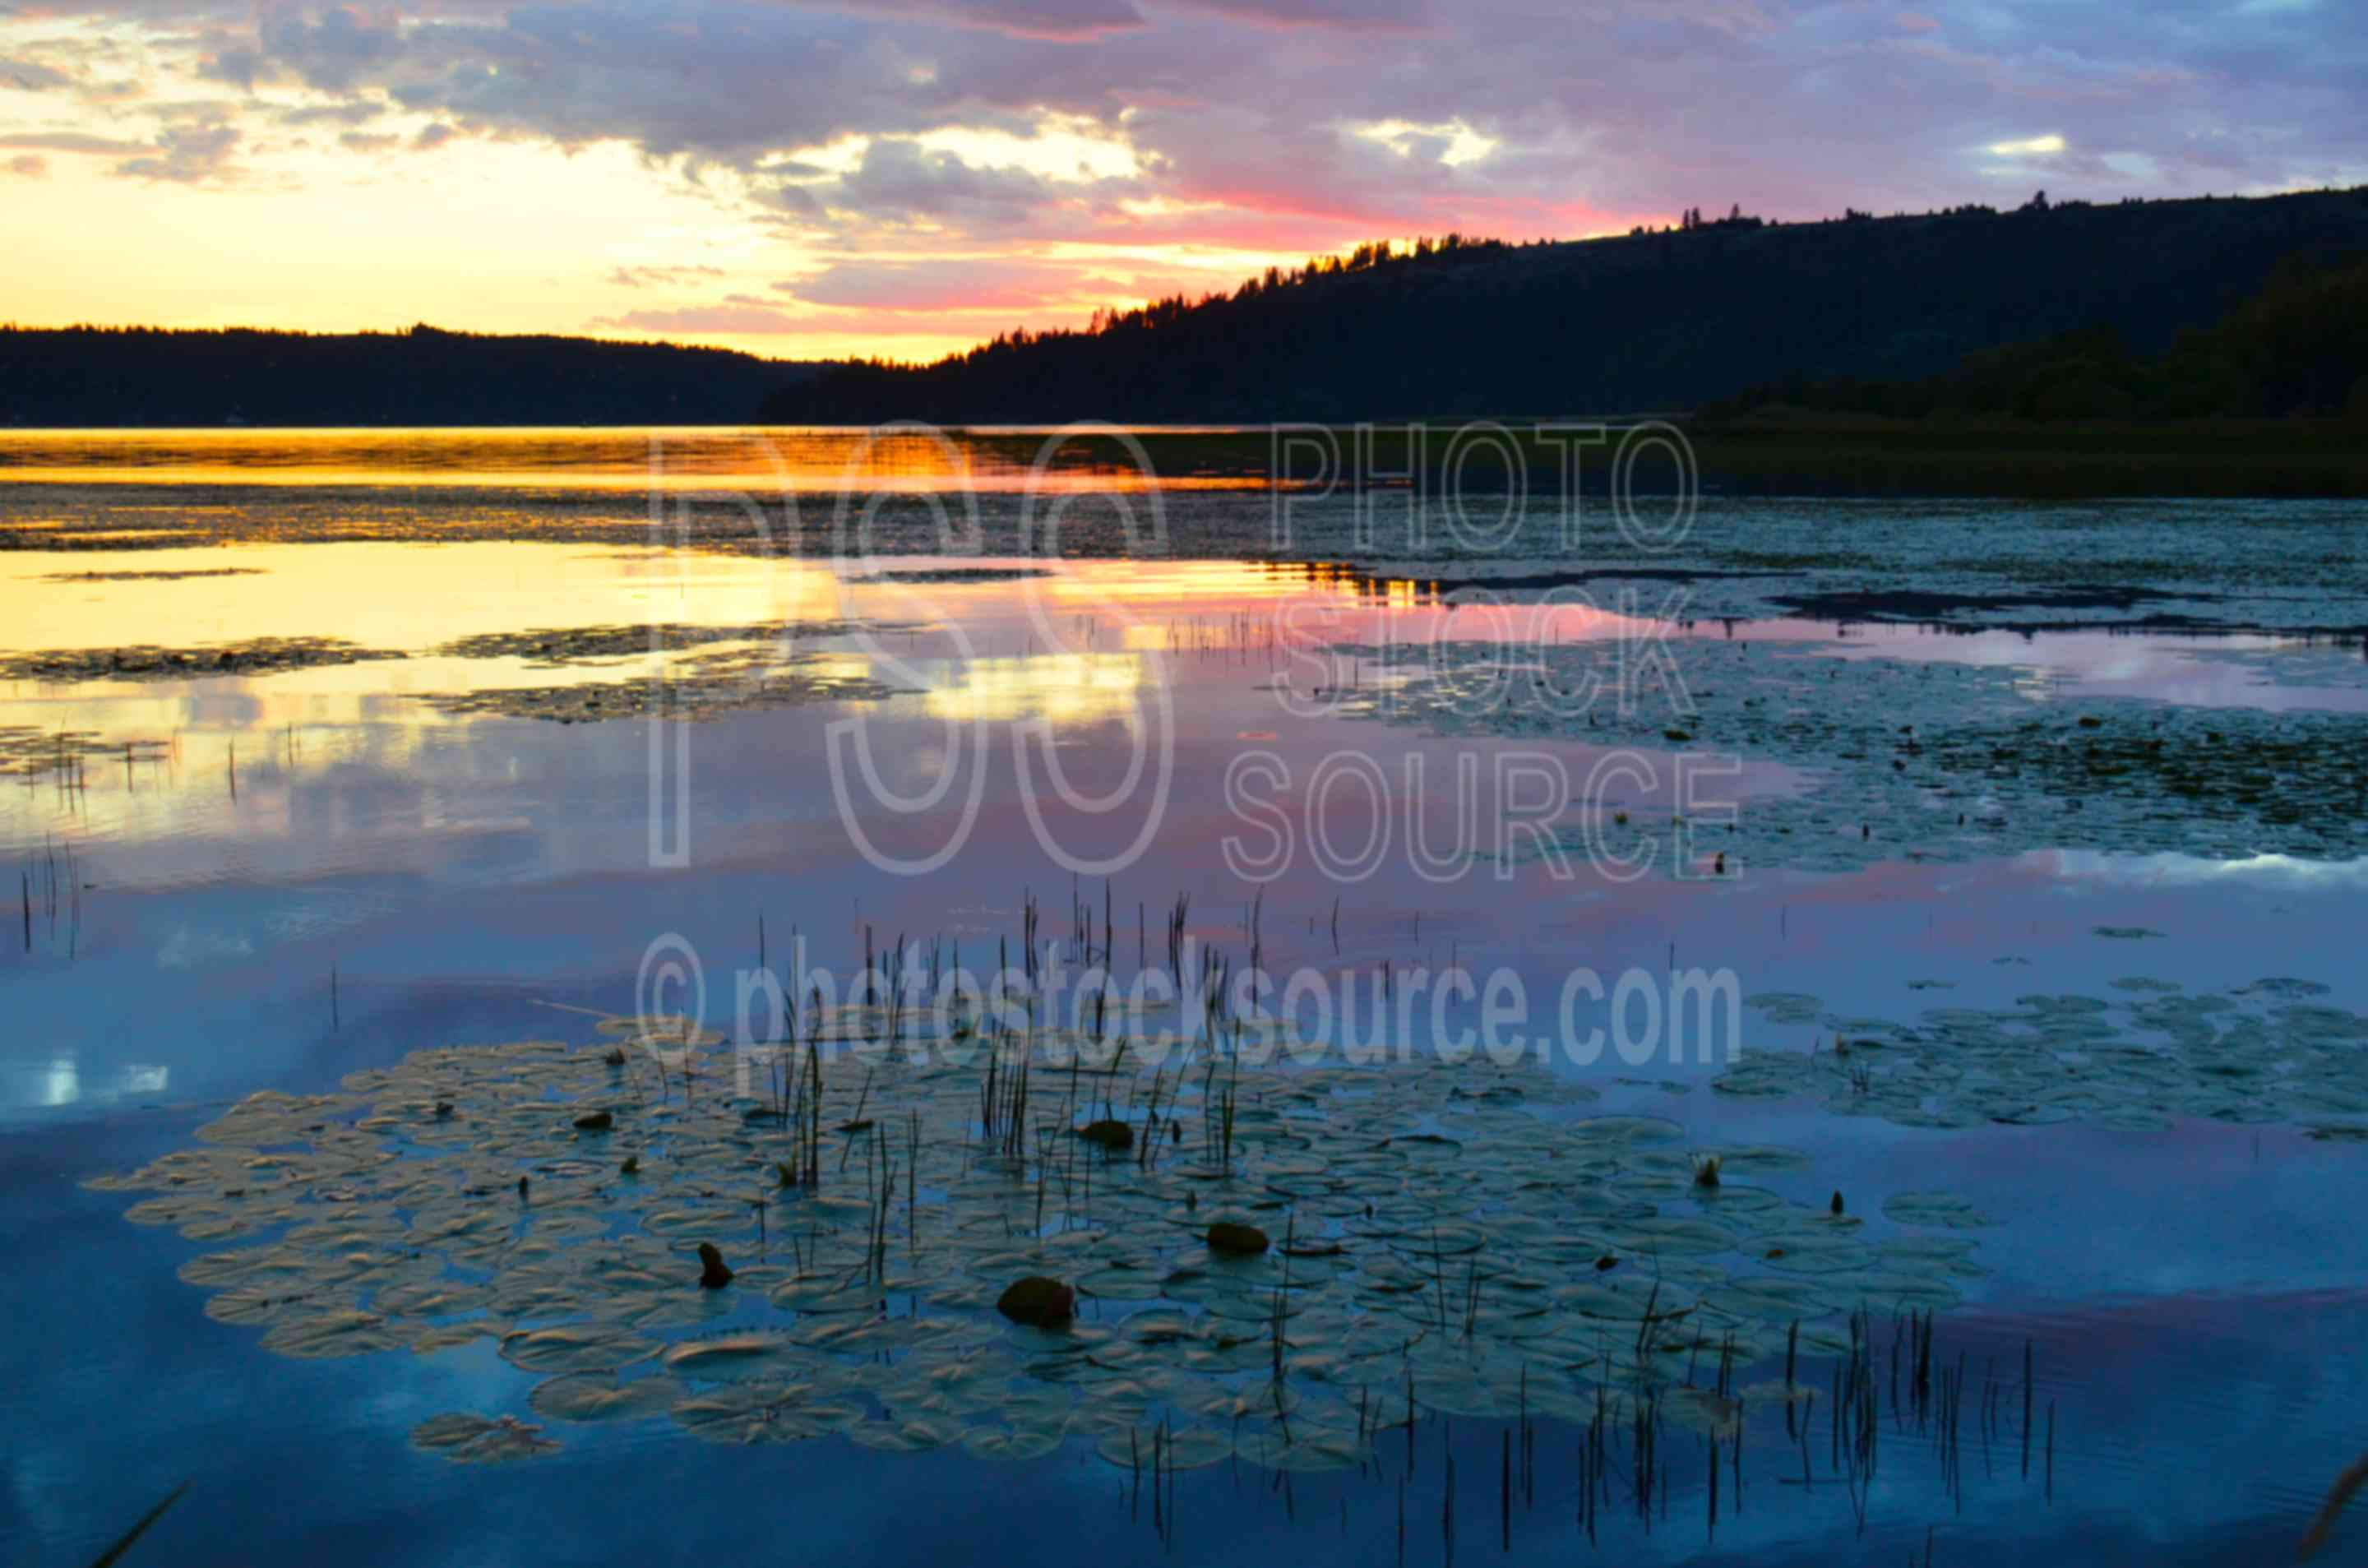 Lake Coeur d'Alene Sunset,plant,green,aquatic,water,lake,lily,bulrush,sunset